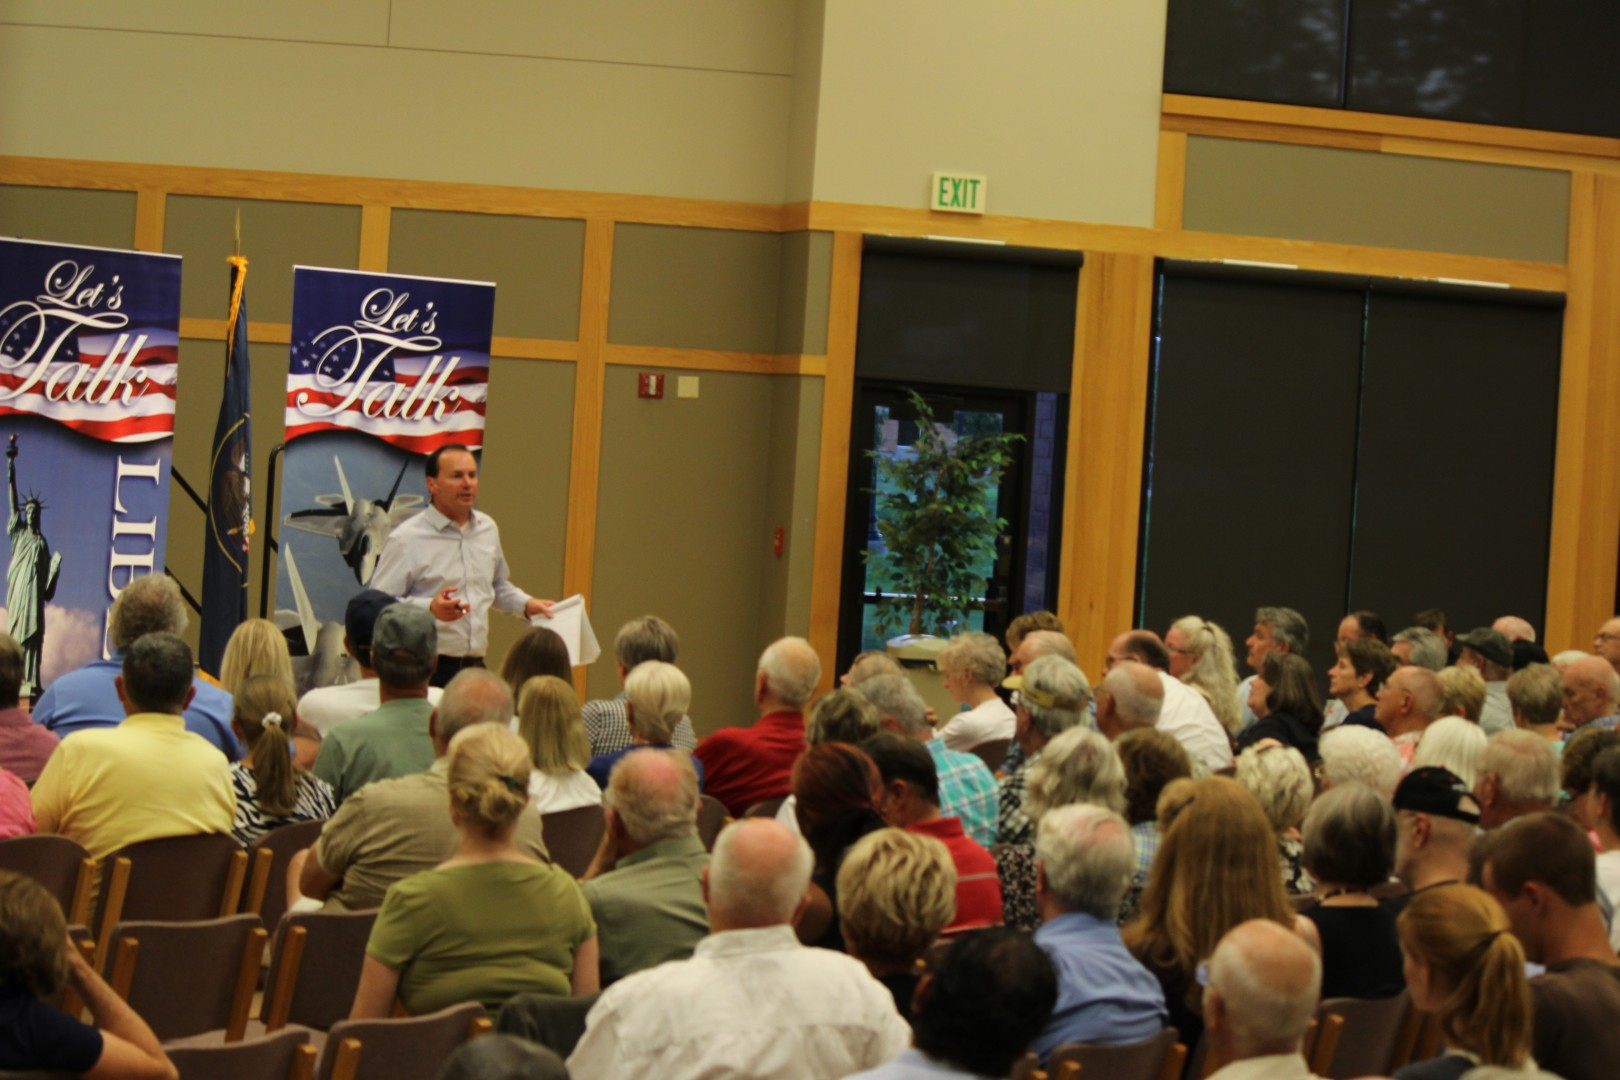 Sen. Mike Lee speaks to the 465 audience members that attended the town hall meeting at Dixie Statue University in St. George on Aug. 29, 2014   Photo by Devan Chavez, St. George News.